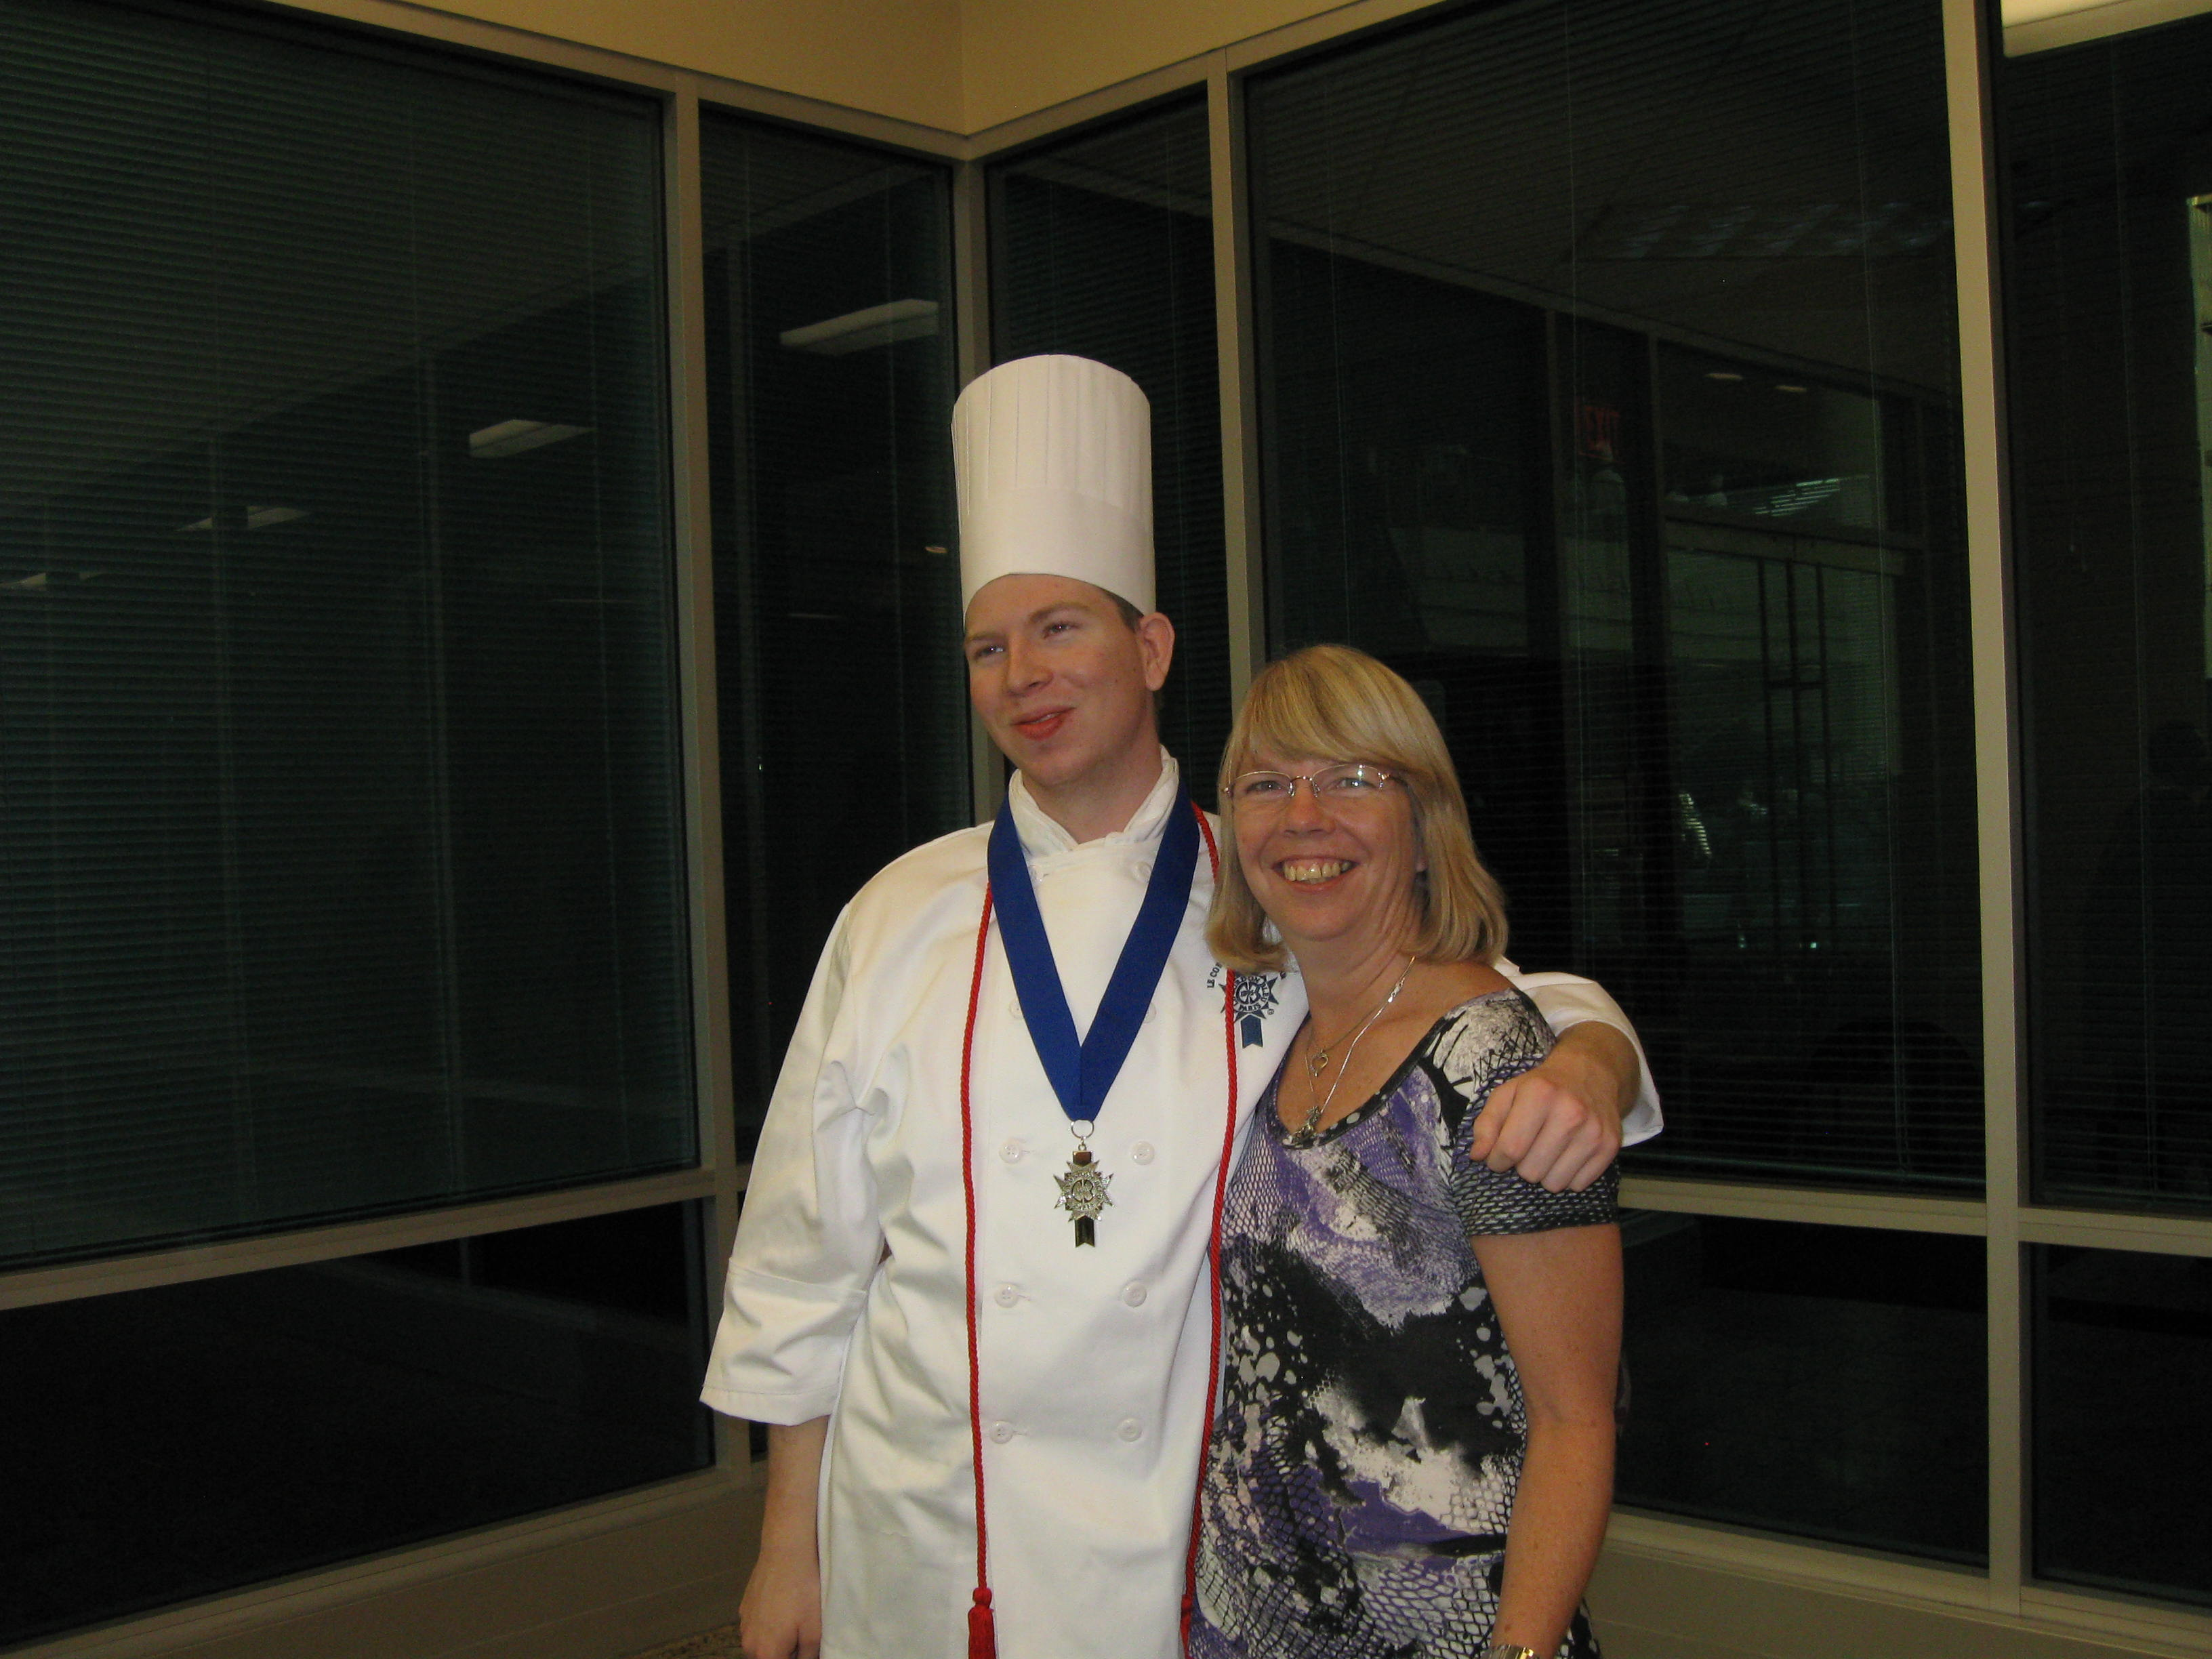 My Son the Chef and Me